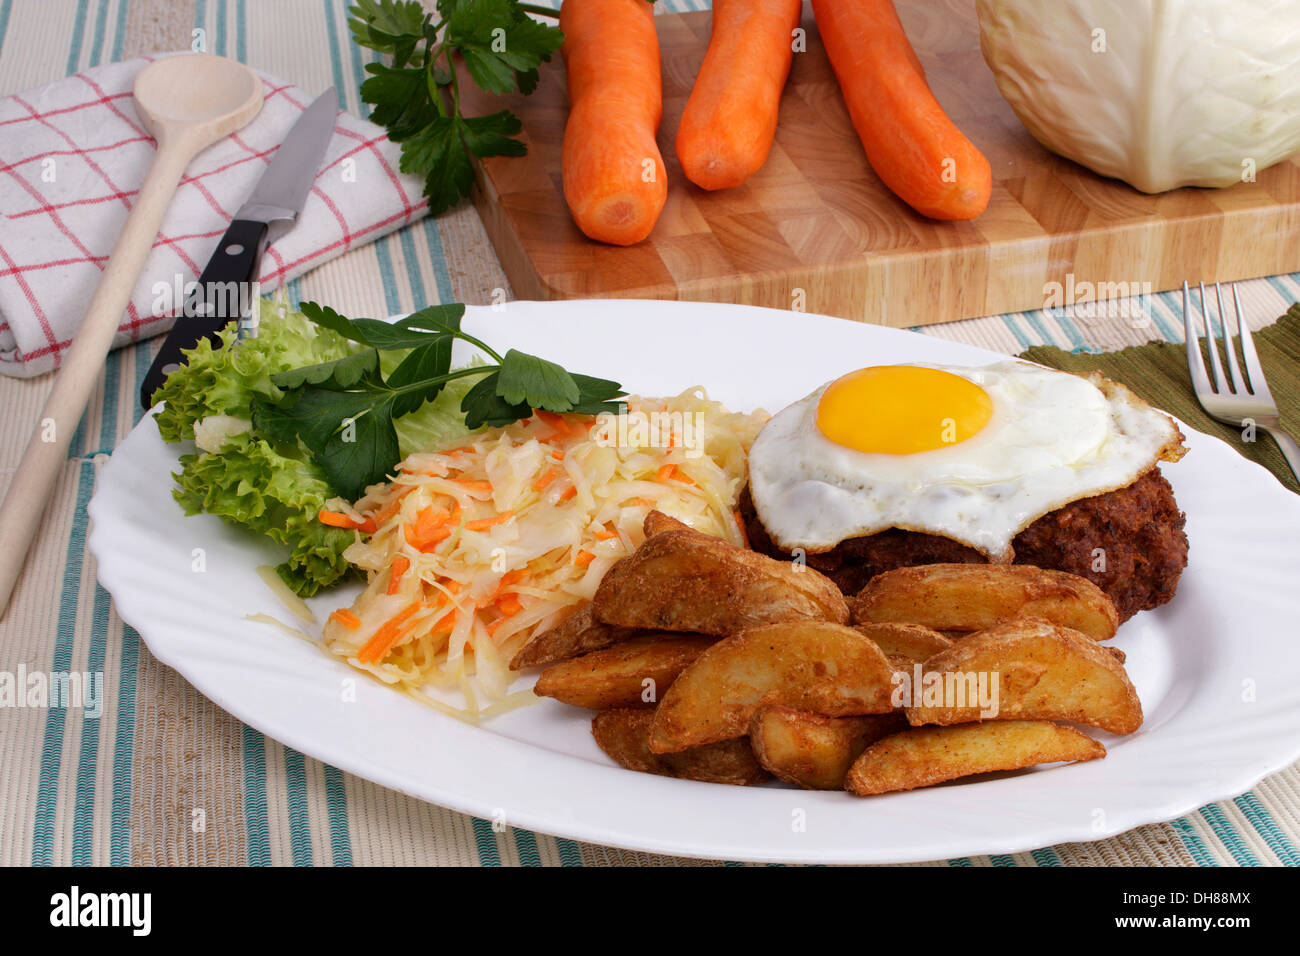 Farmers meat ball, hamburger steak, fried egg, baked potatoe wedges, coleslaw, carrots, white cabbage and flat leaf parsley on - Stock Image